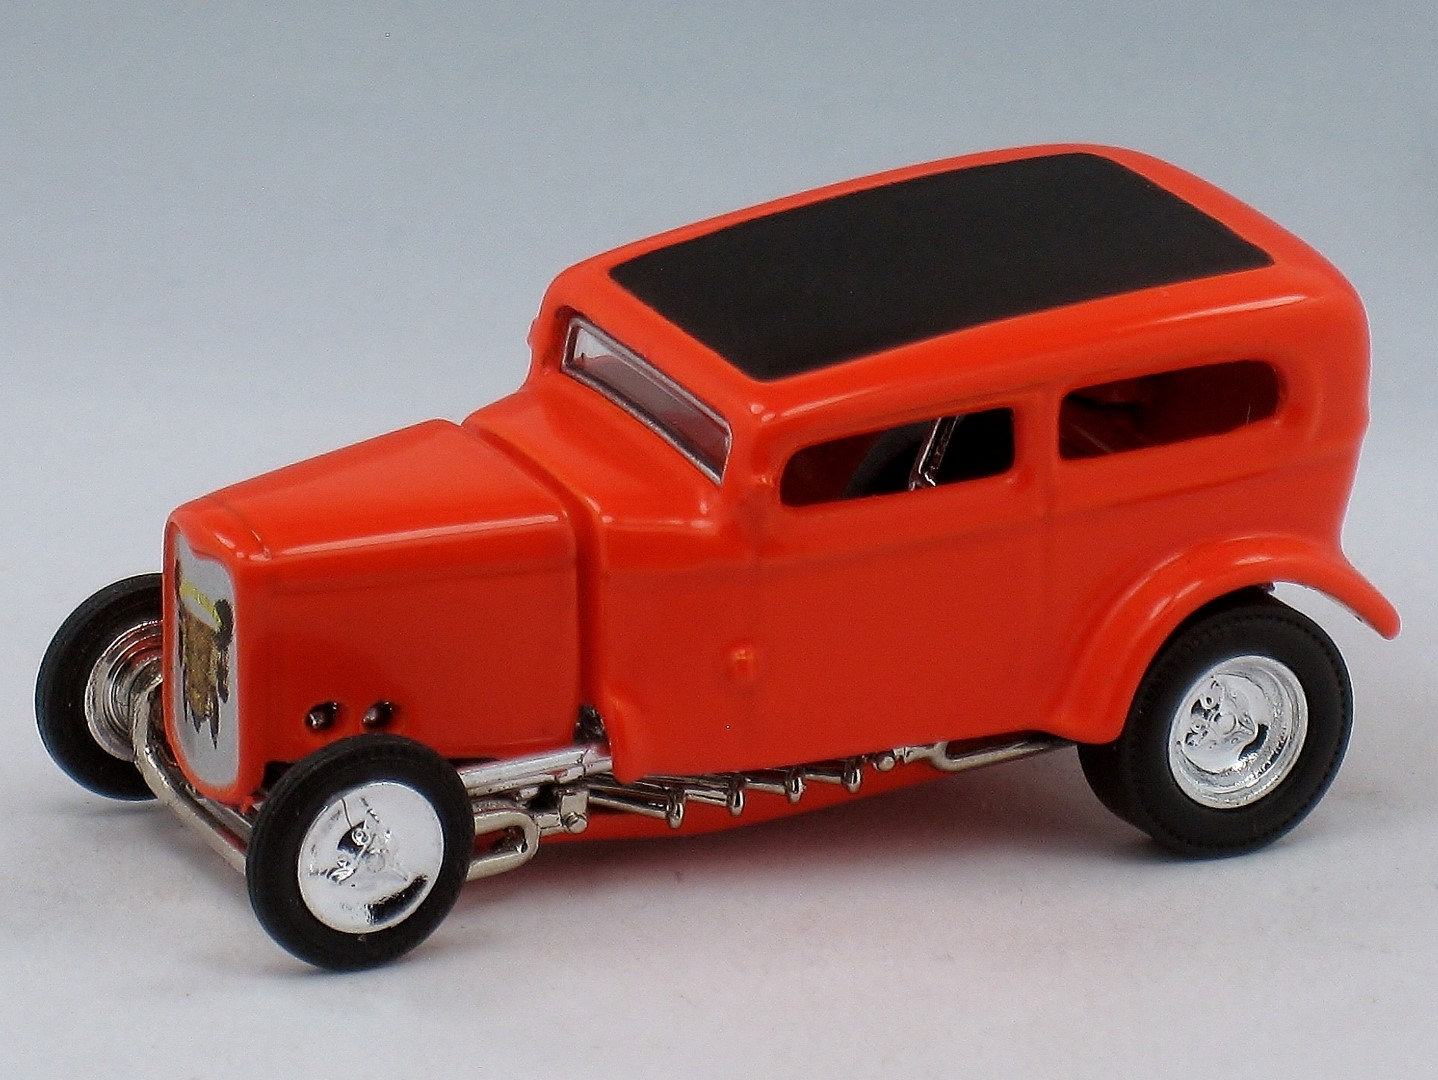 '32 Ford Sedan (Orange Crate)